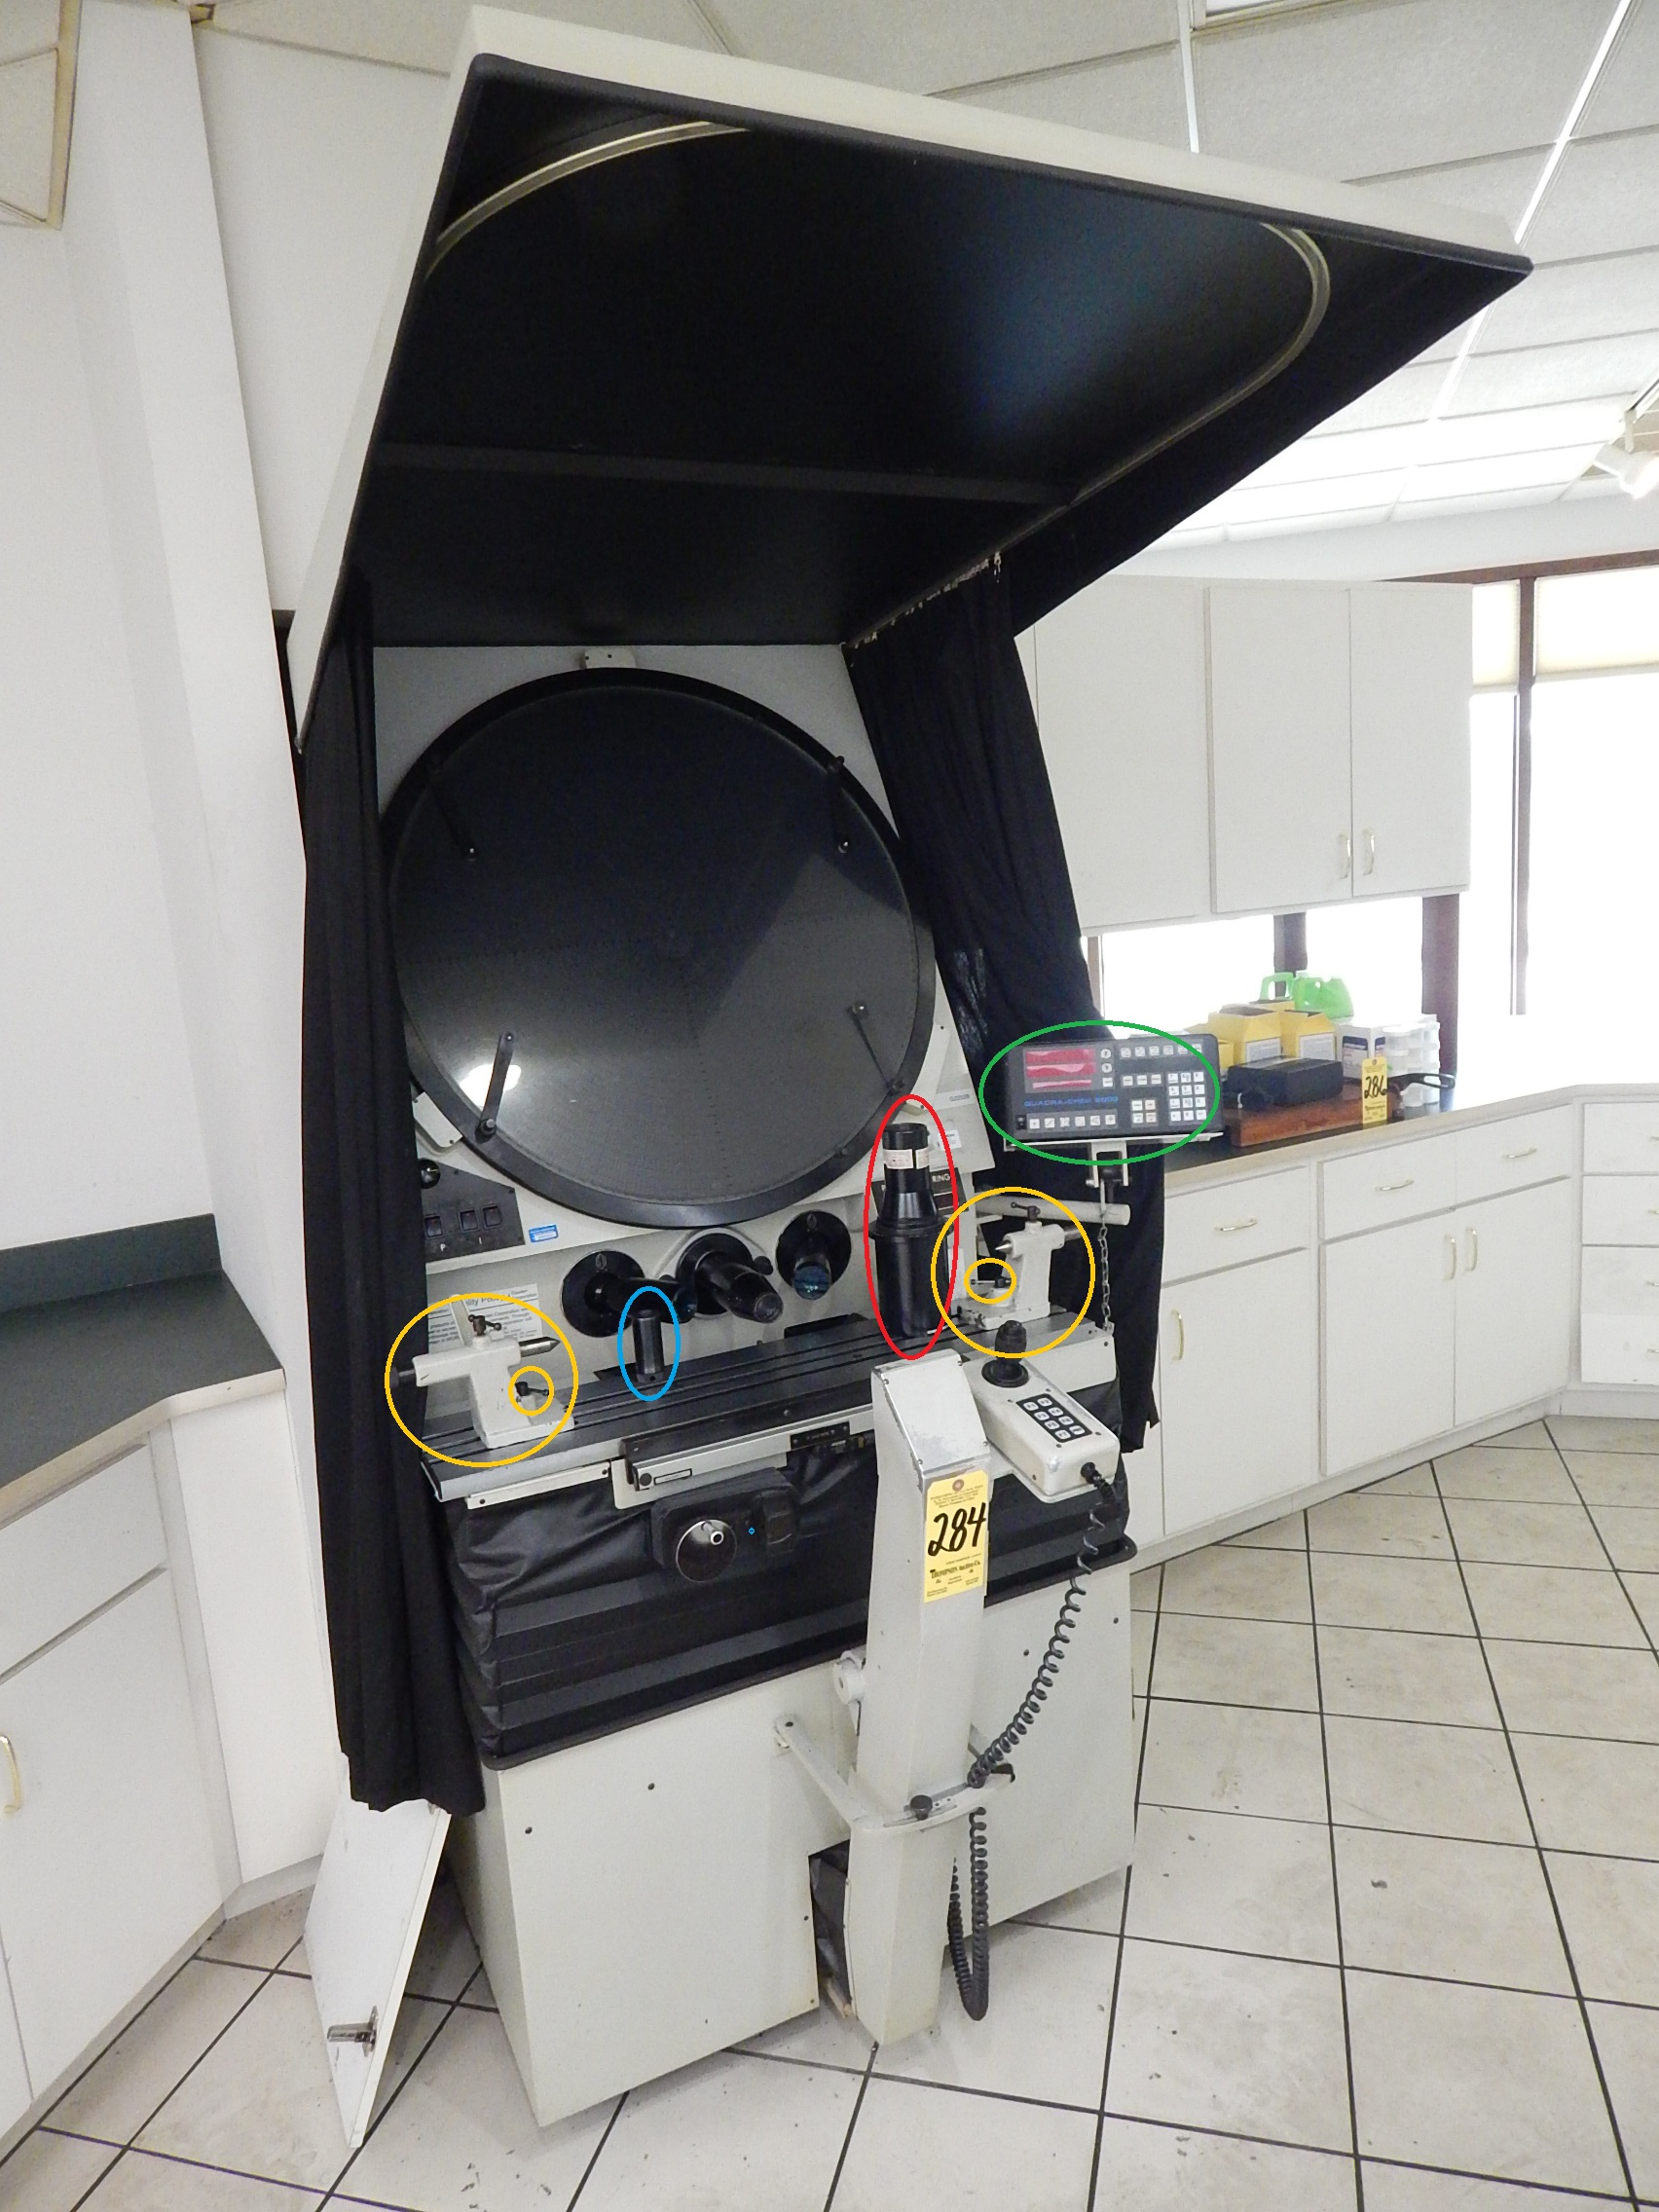 """30"""" Rank Precision / ST Industries Model 22-2600 Optical Comparator, S/N T864008, New 1986."""